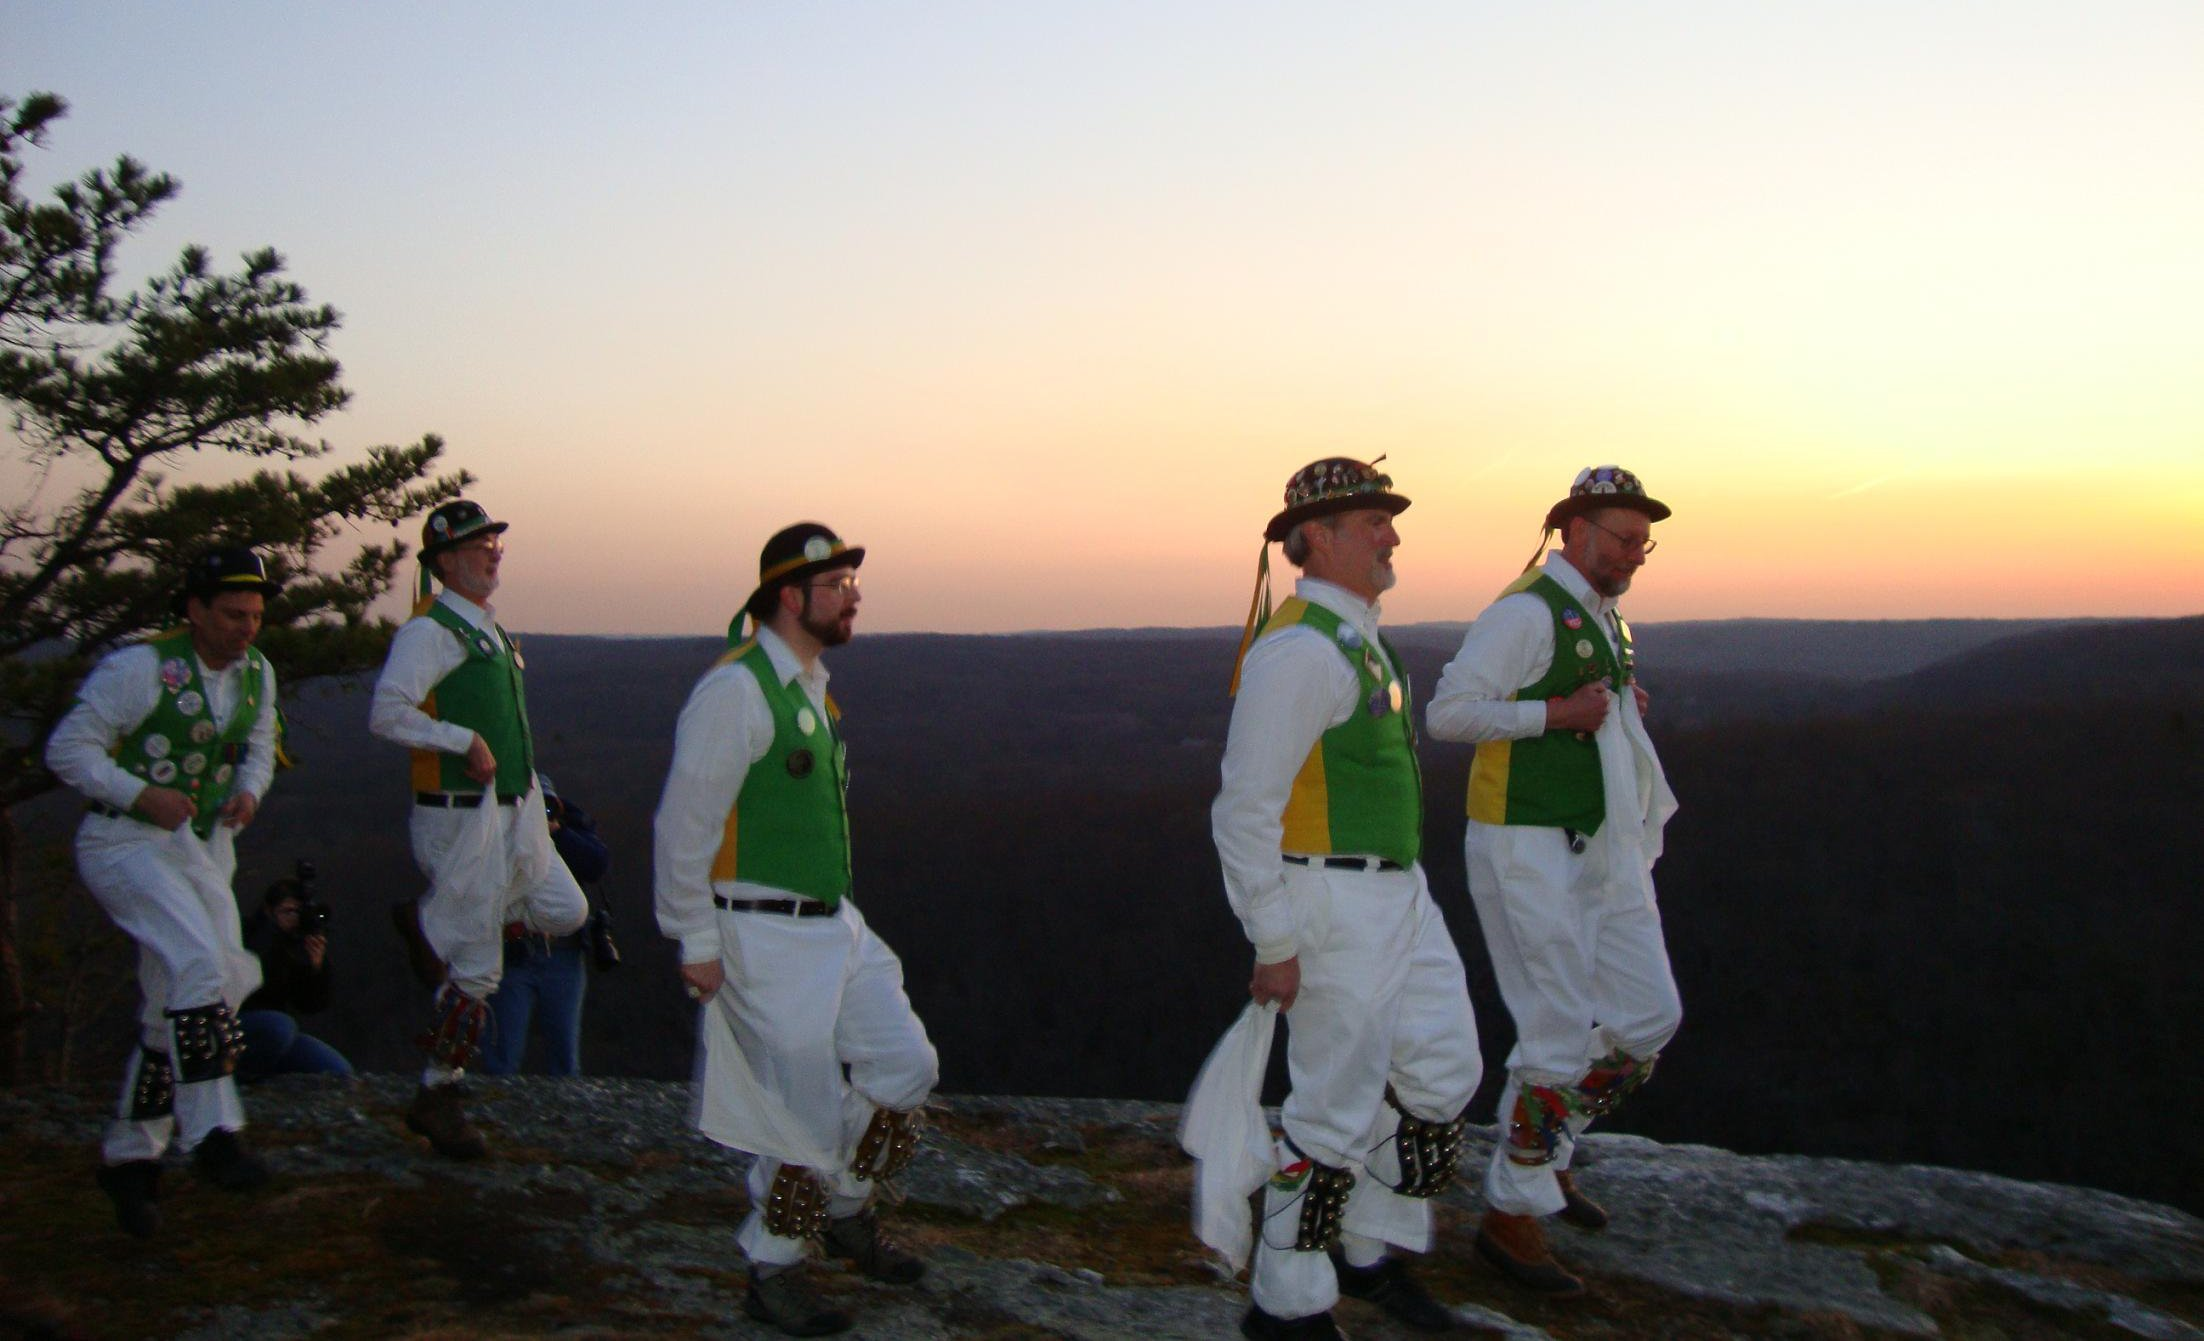 Five dancer set on Lantern Hill